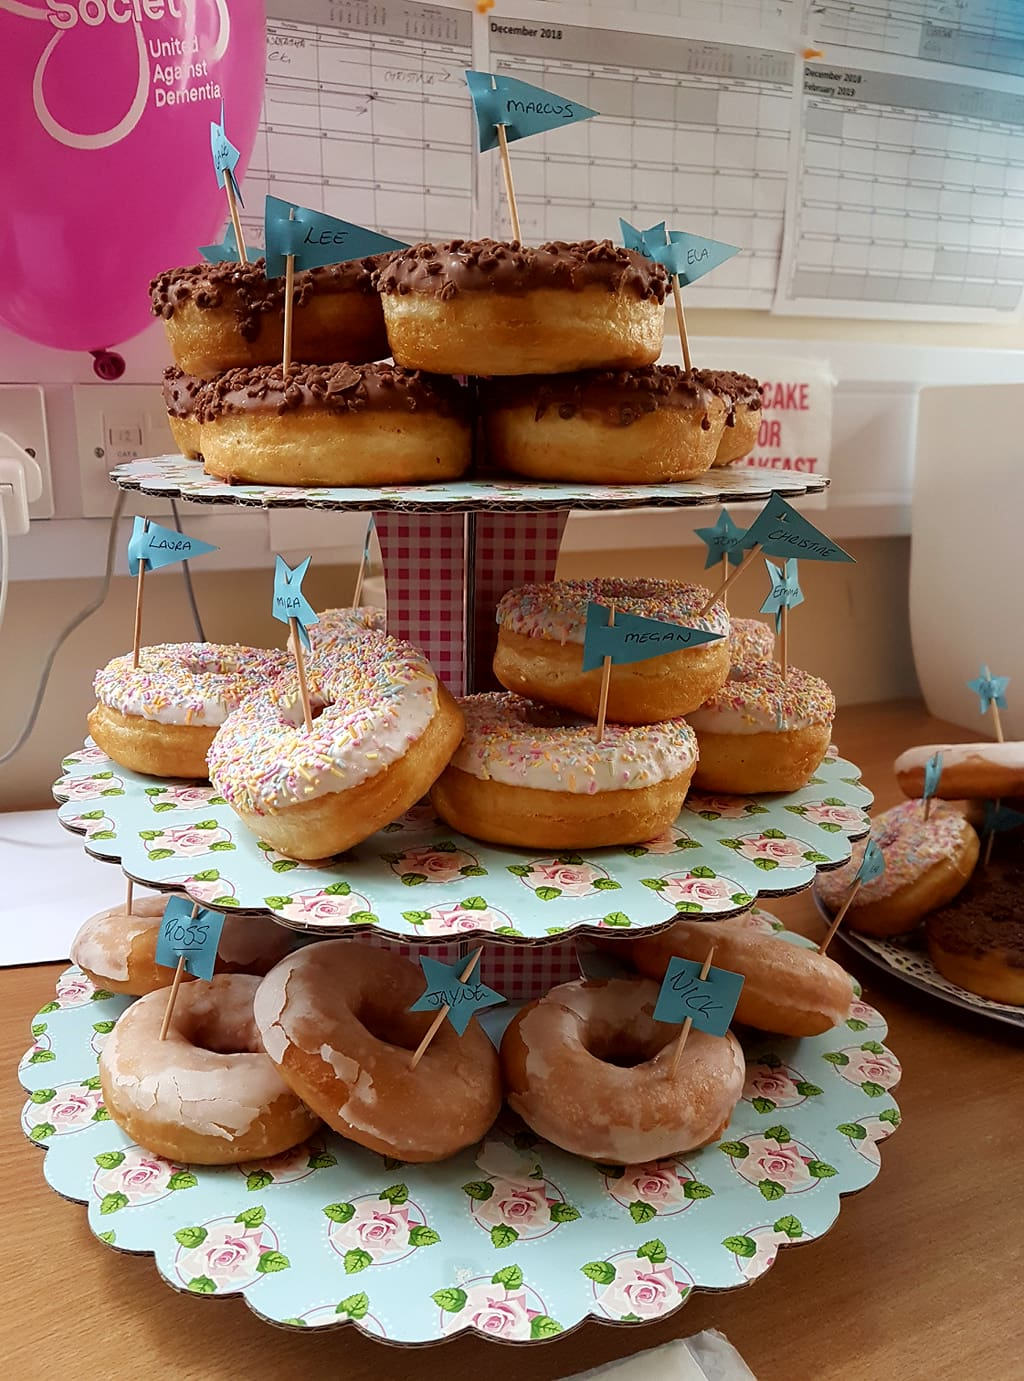 Cakes for carers Alzheimers Society